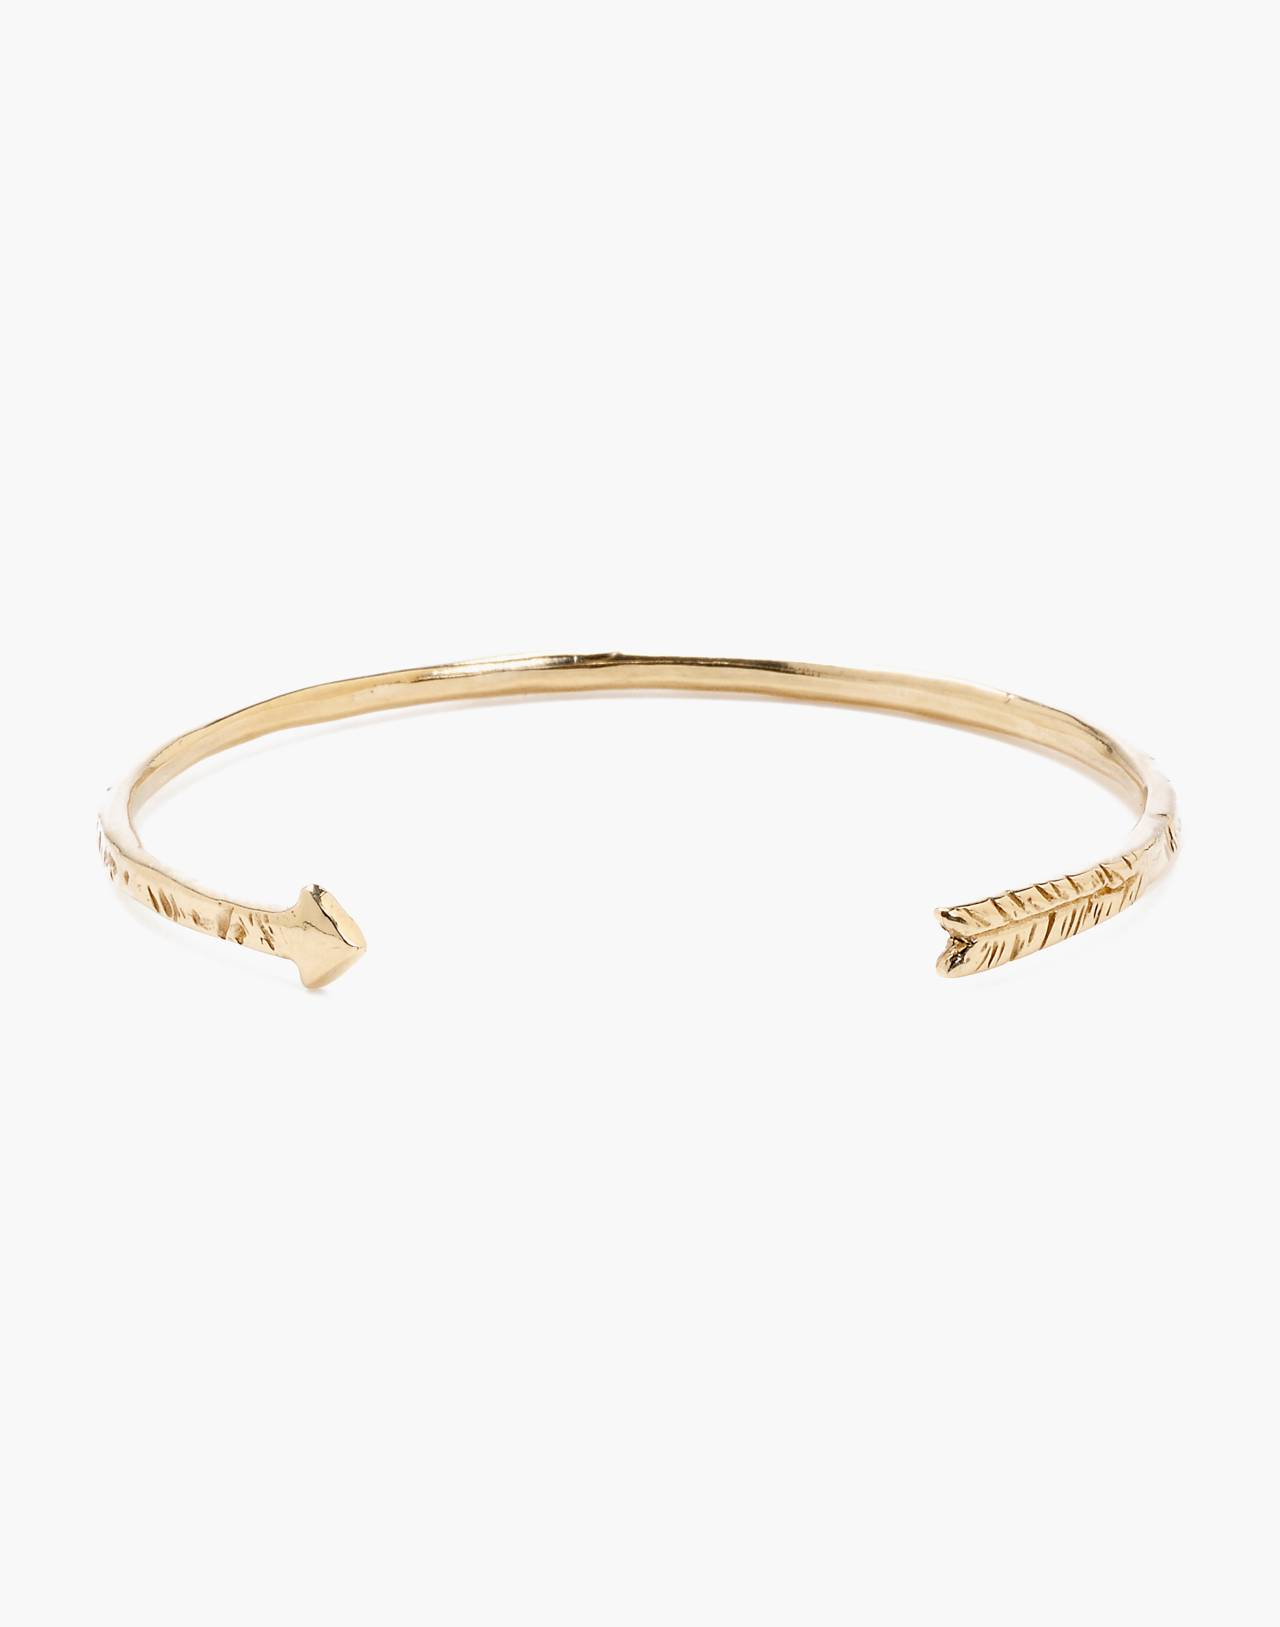 Odette New York® Arrow Cuff Bracelet in gold image 1